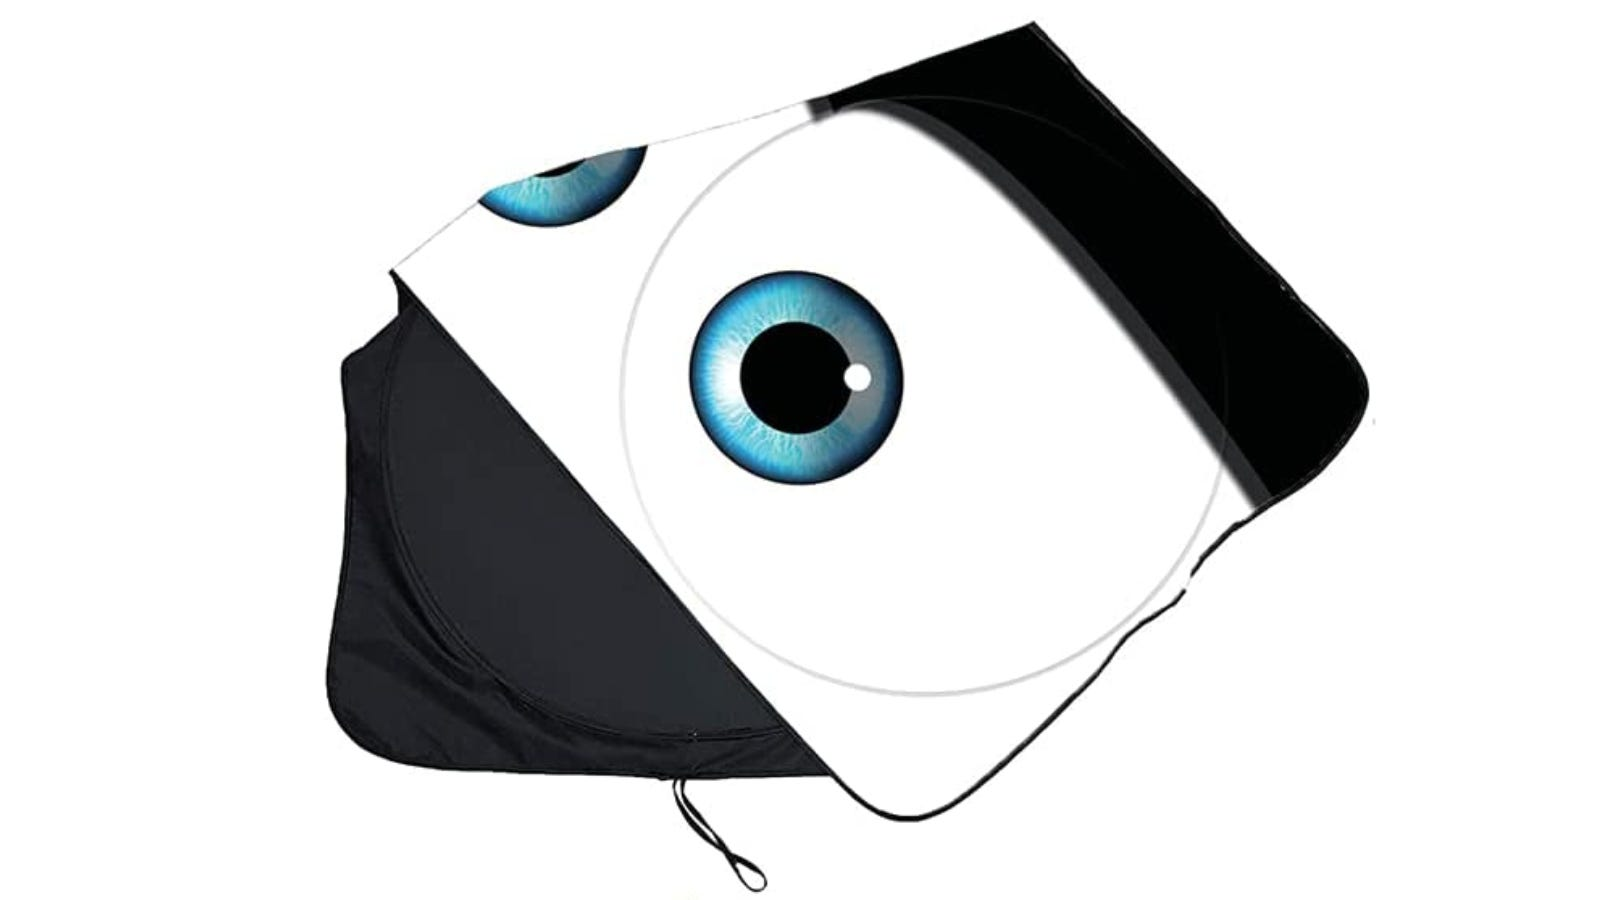 A folded sunshade that features two large cartoon eyes.